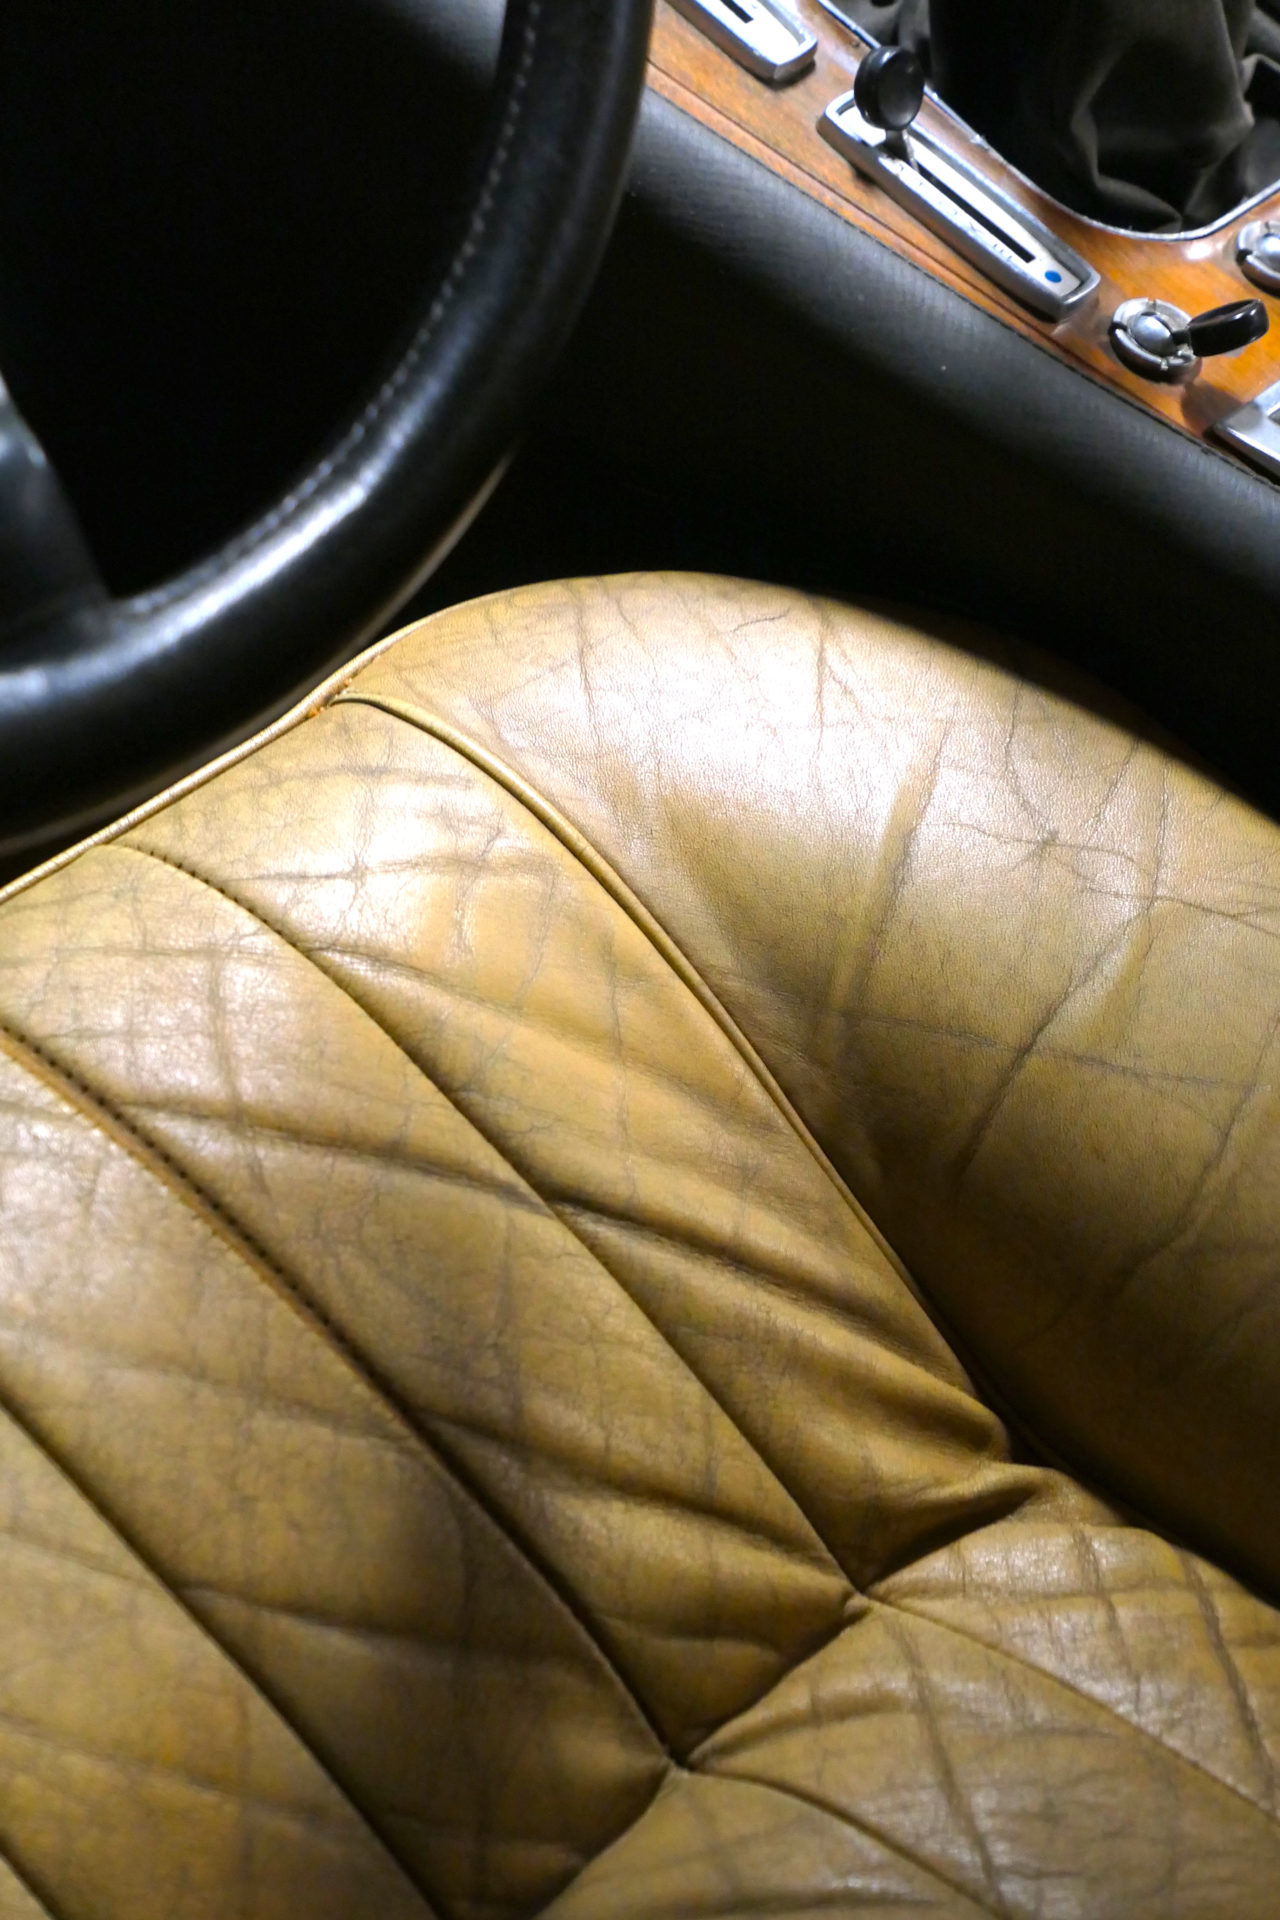 roadrugcars road rug cars artcurial sur les champs ferrari 365 GT4 22 patinated leather seat